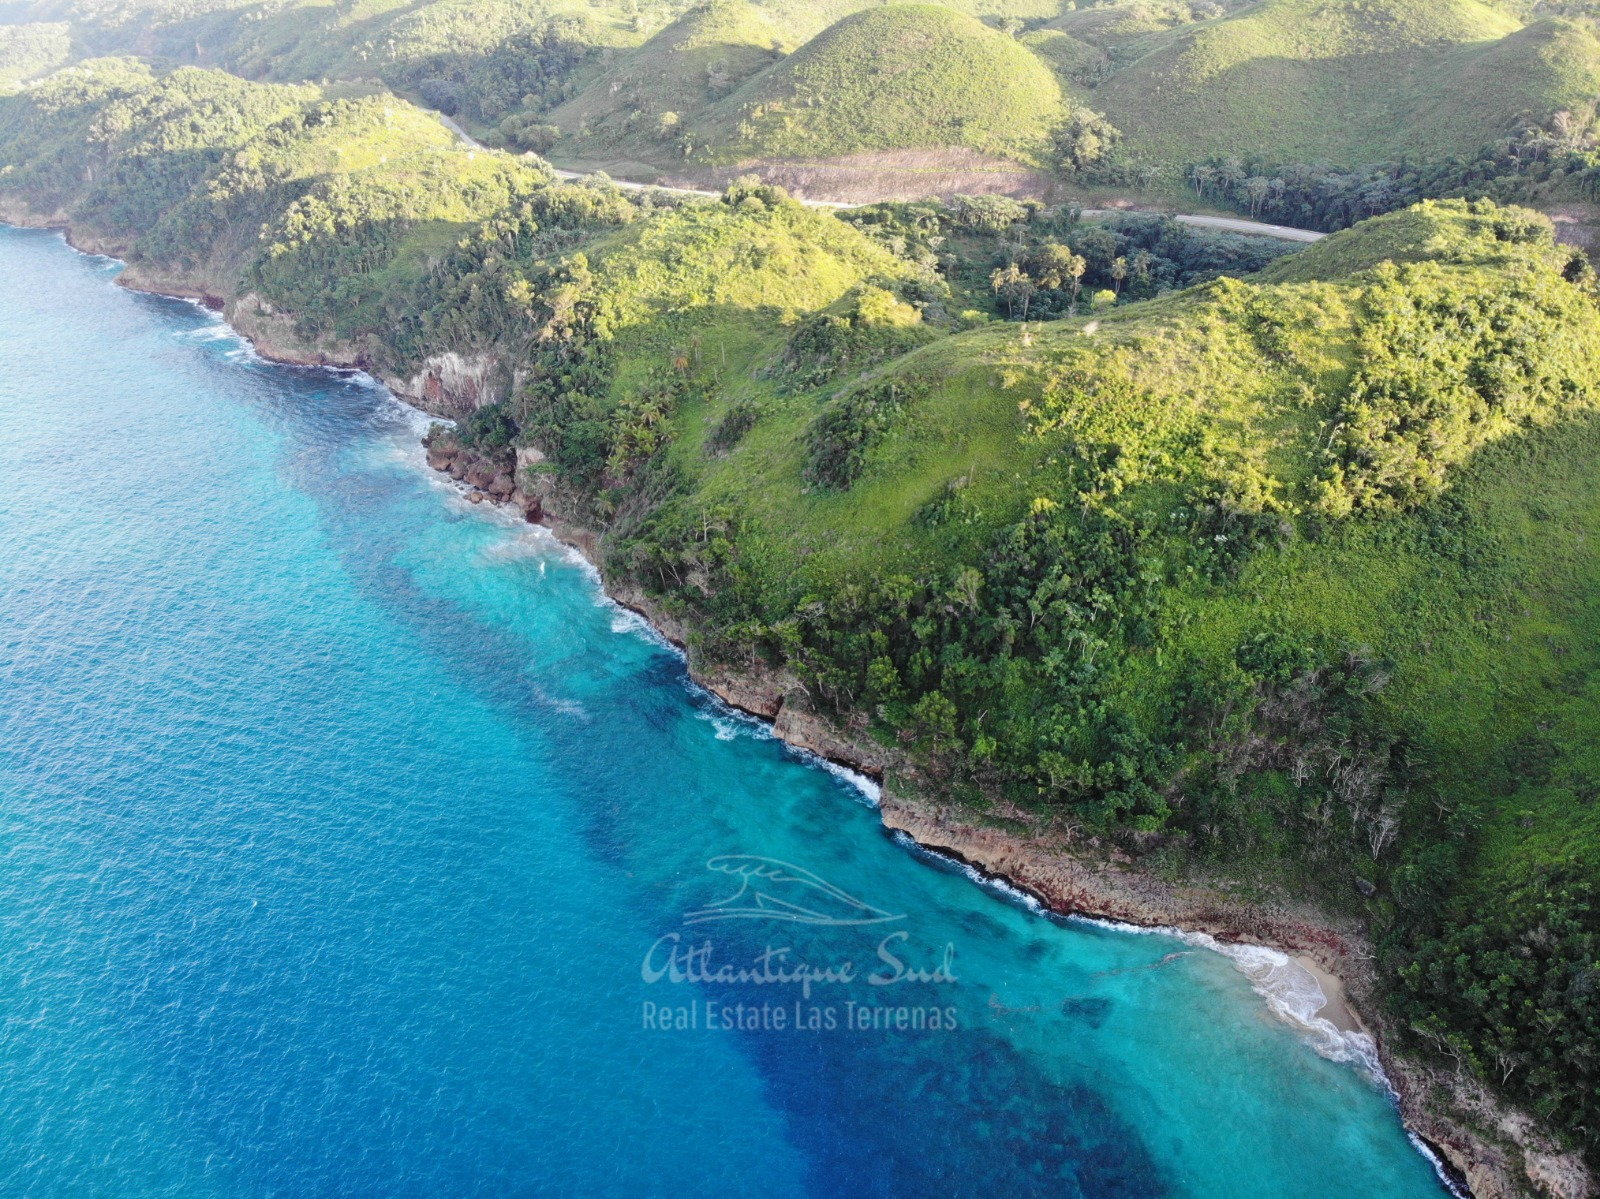 Cliff Land for Sale Las Terrenas 4.jpeg